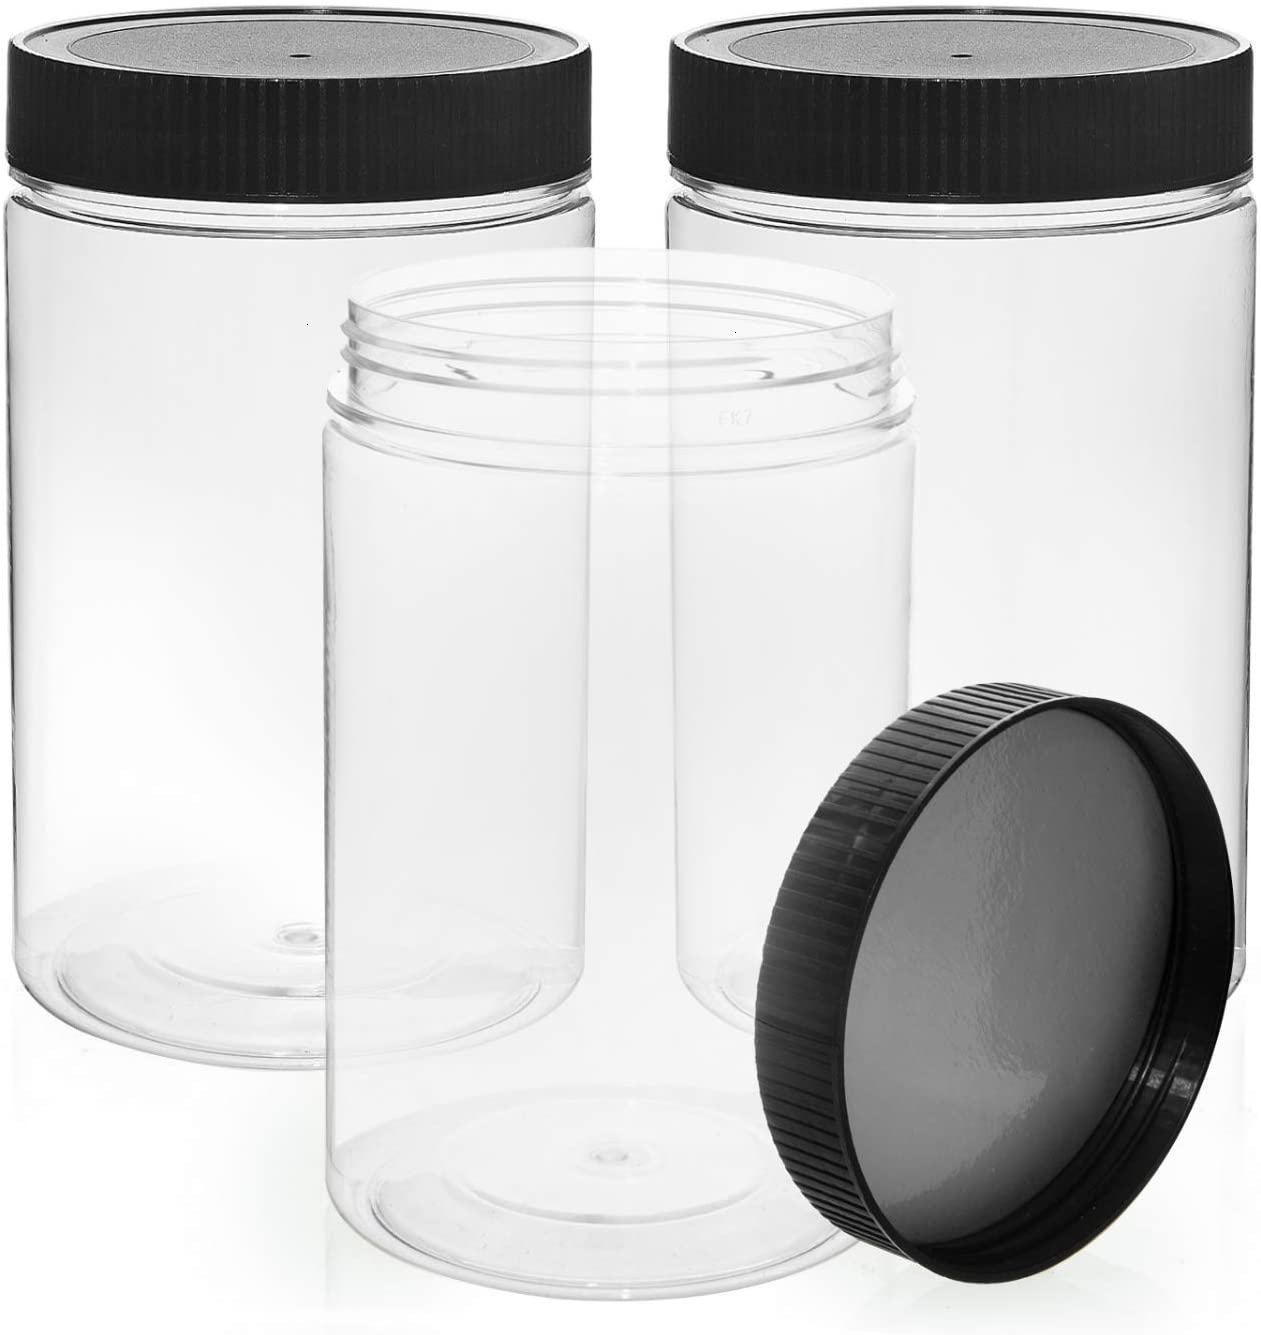 Vumdua 27 Ounce Plastic Jars with Lids, 3 Pack Food Storage Containers Airtight, Clear Containers for Organizing